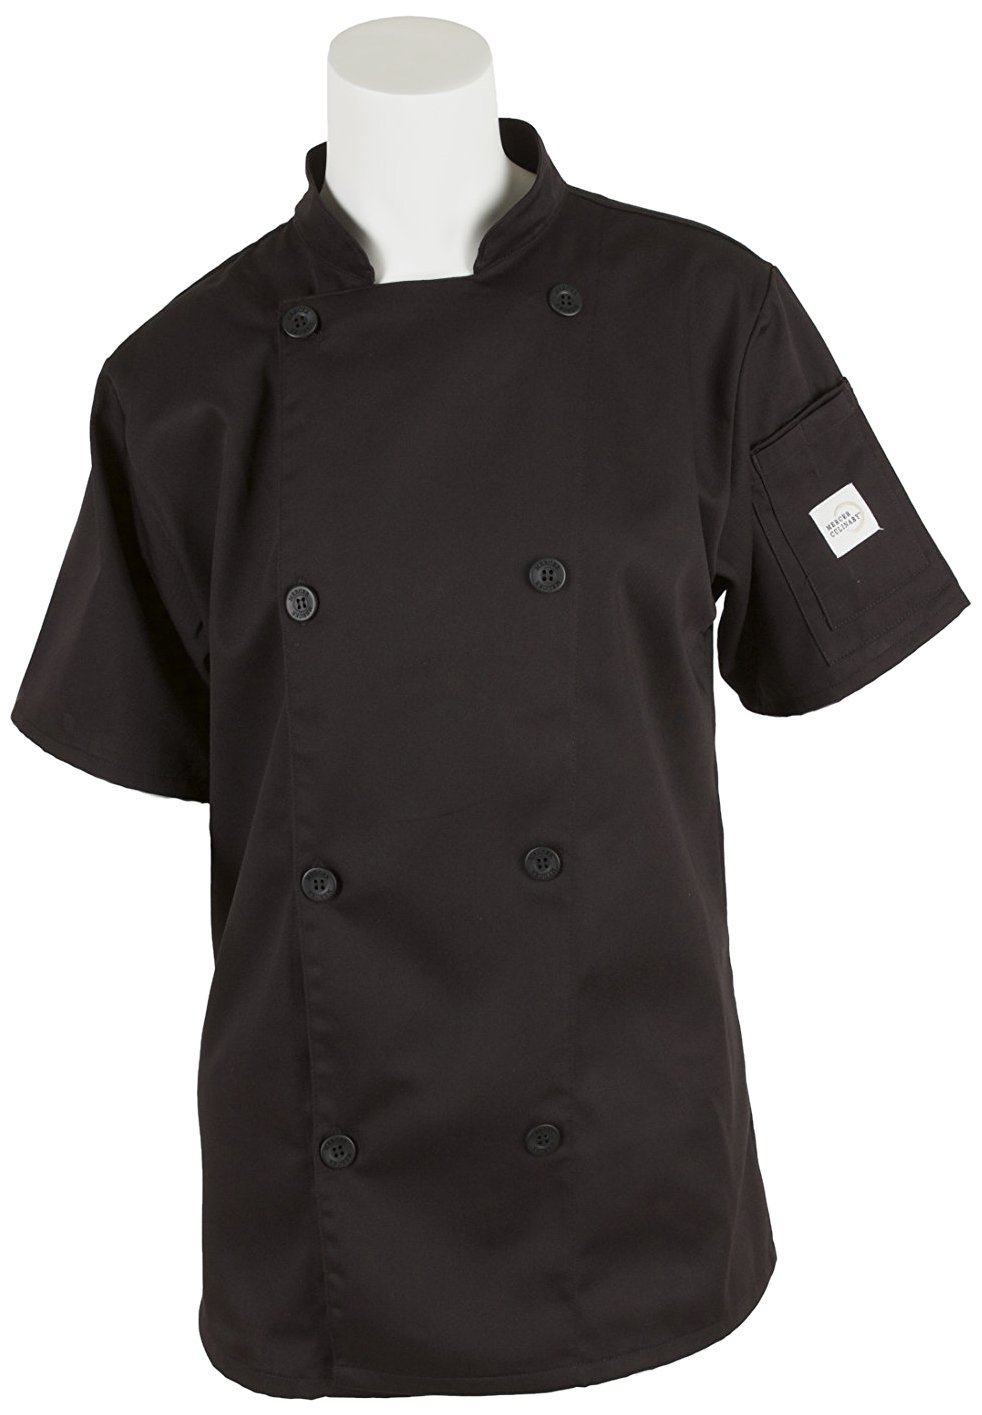 Mercer Culinary M61032BK2X Genesis Women's Short Sleeve Chef Jacket with Traditional Buttons, XX-Large, Black by Mercer Culinary